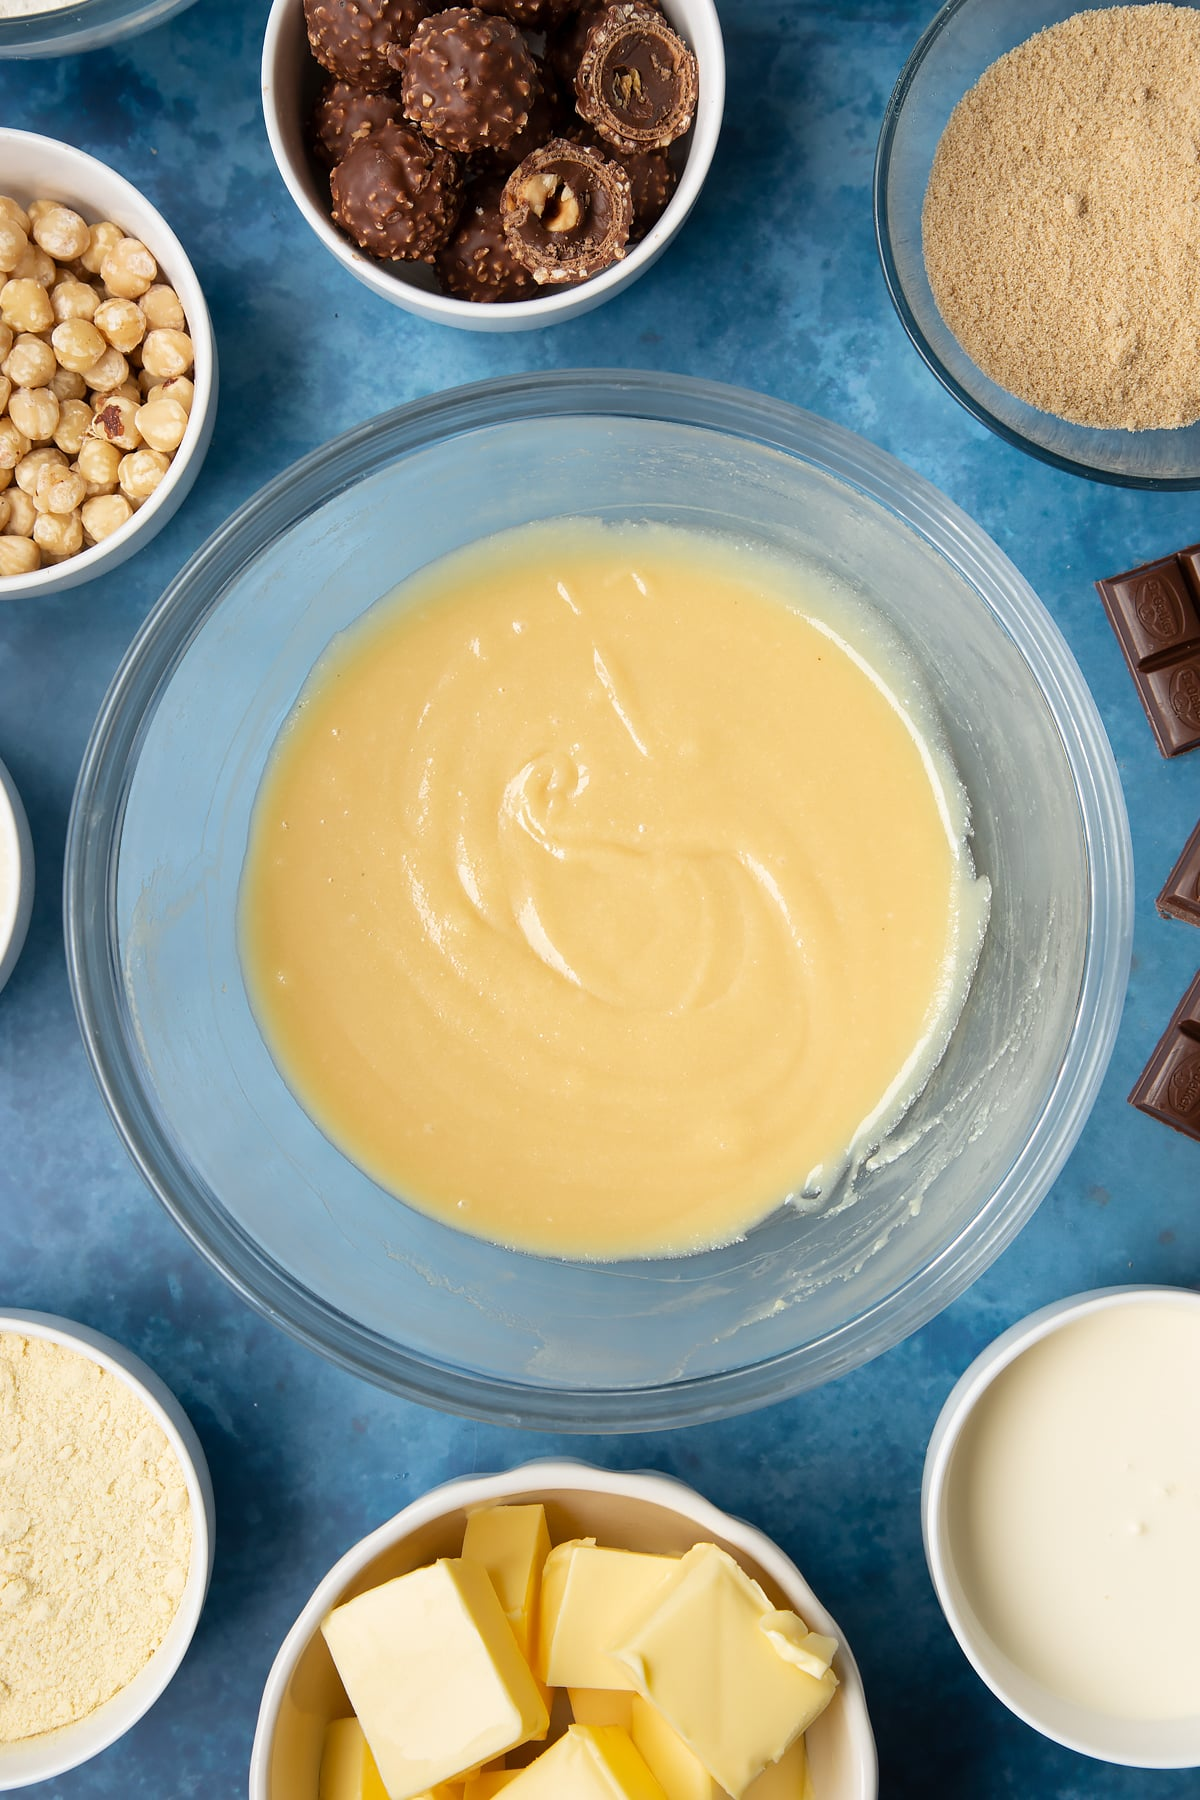 Smooth caramel in a glass mixing bowl. Ingredients to make a Ferrero Rocher slice surround the bowl.